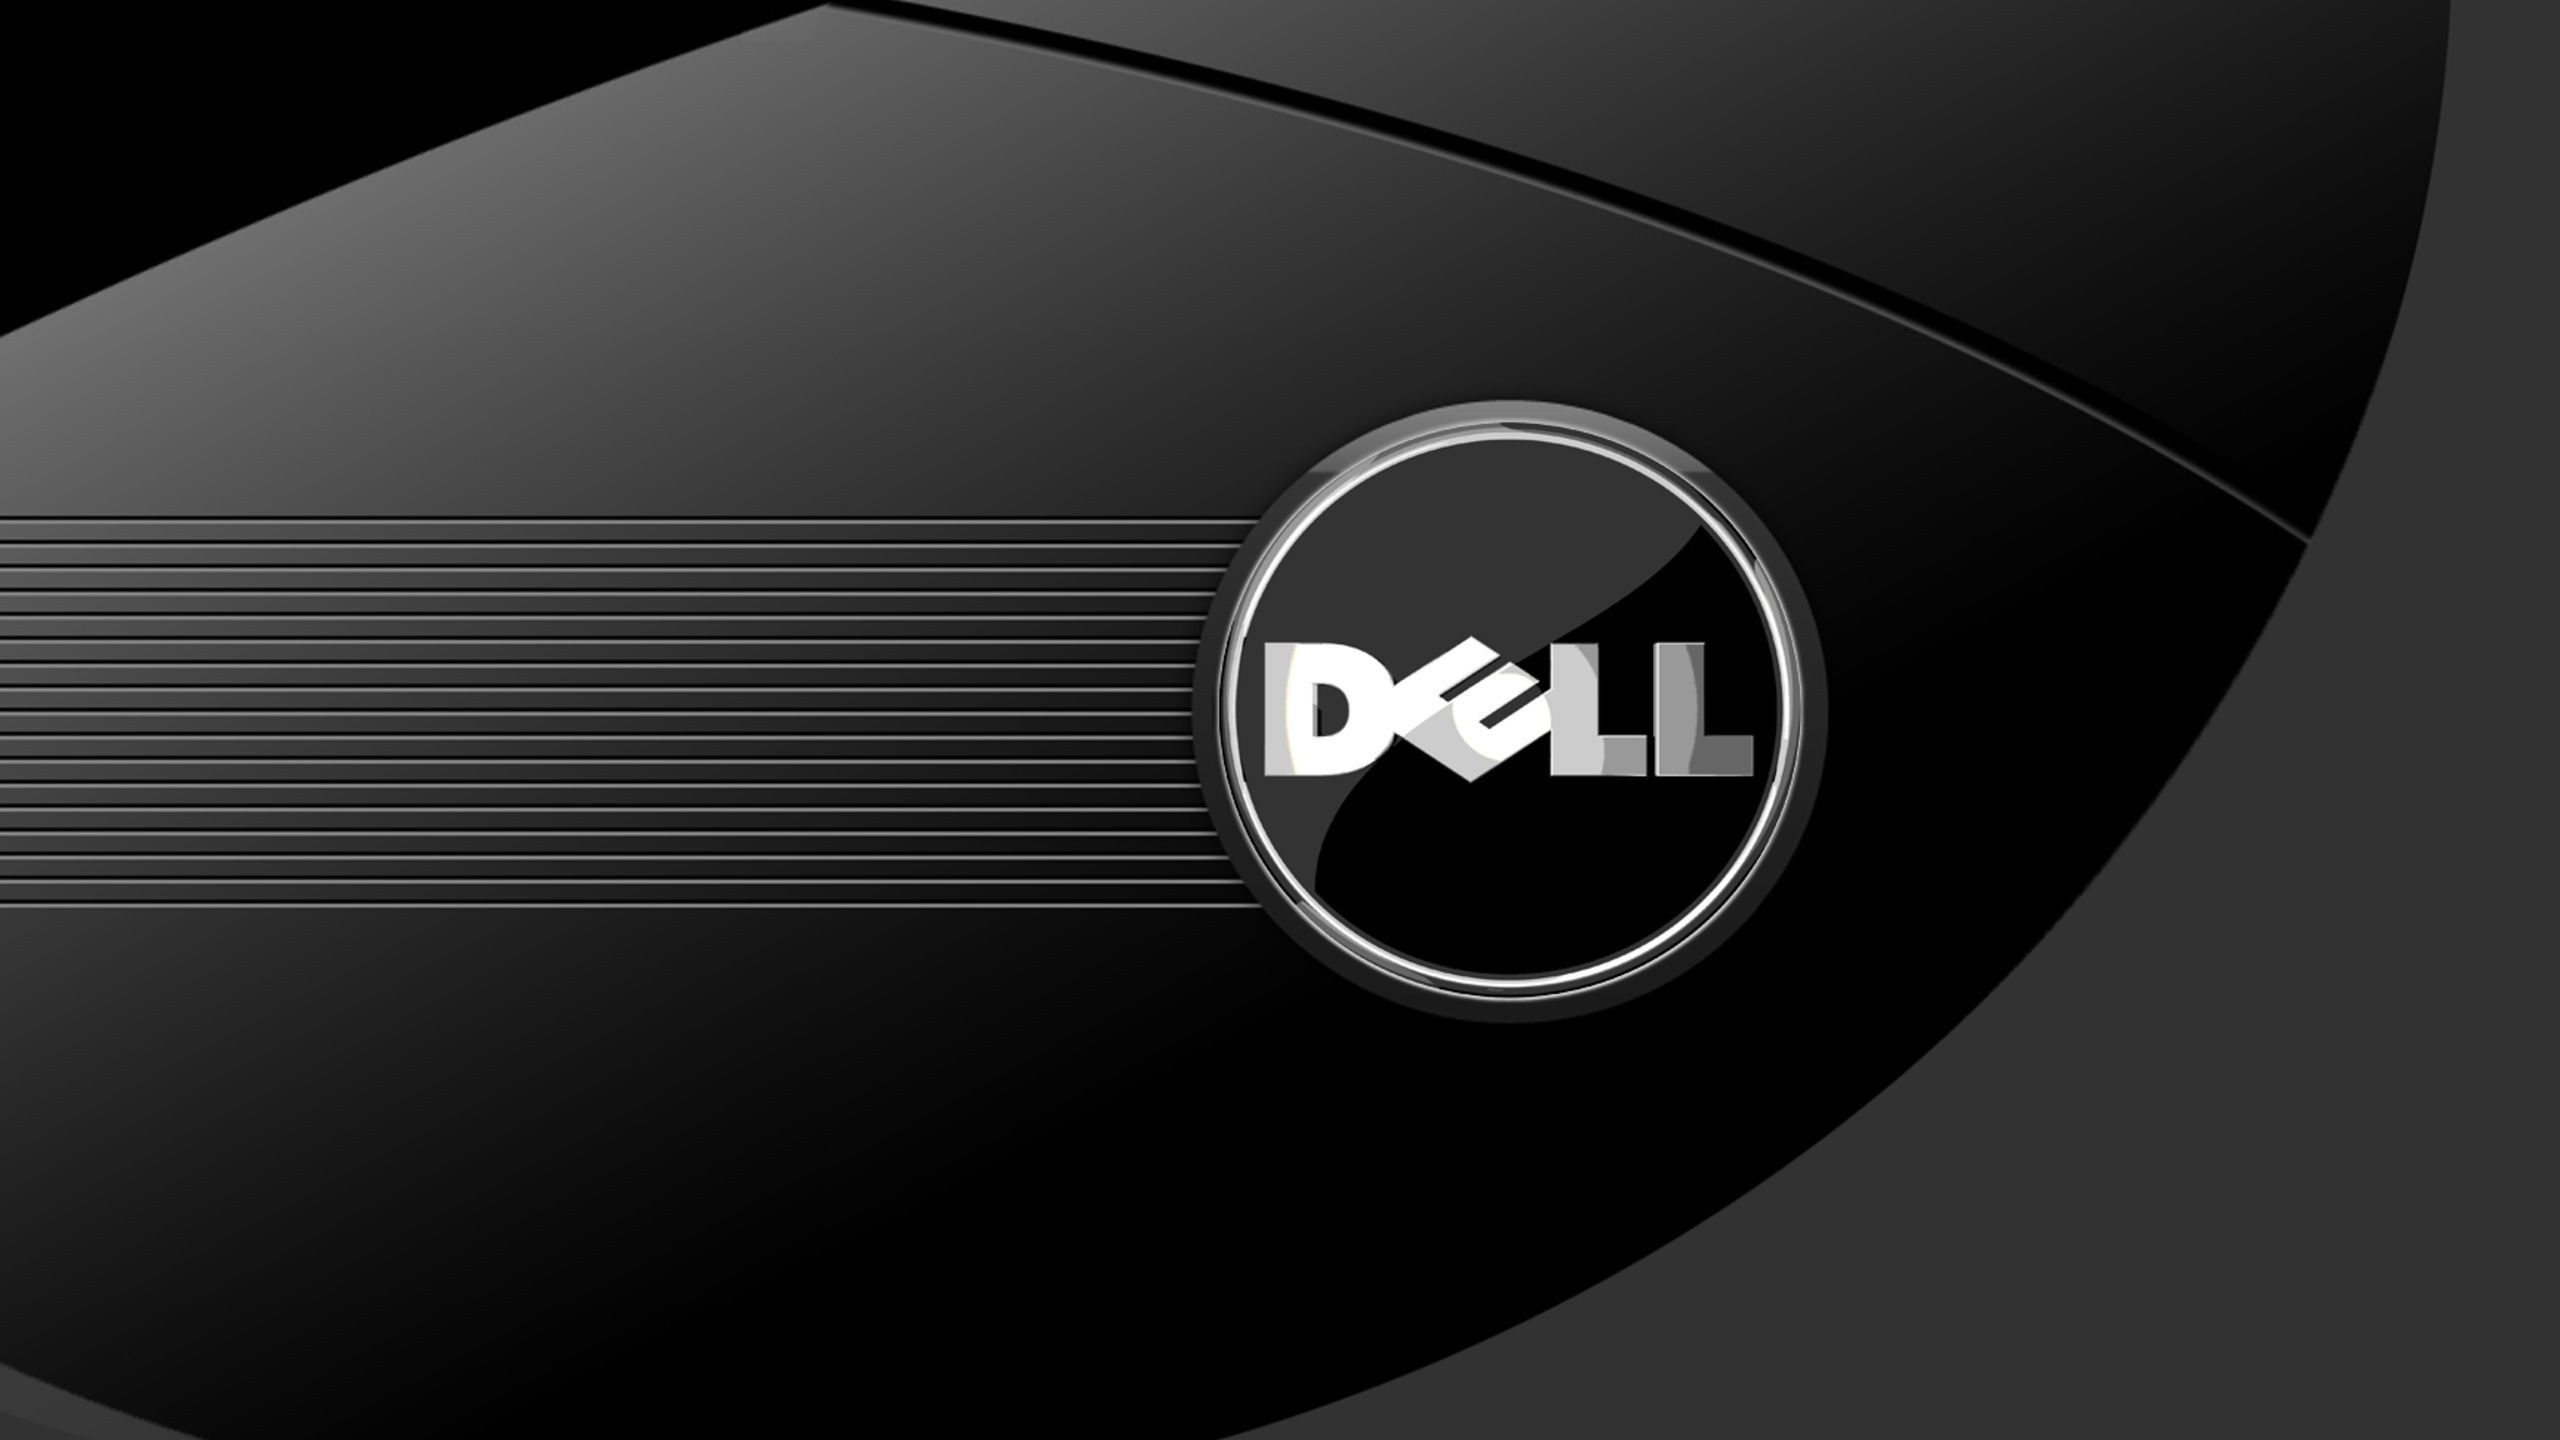 Dell Titanium Partnership - First in Iraq